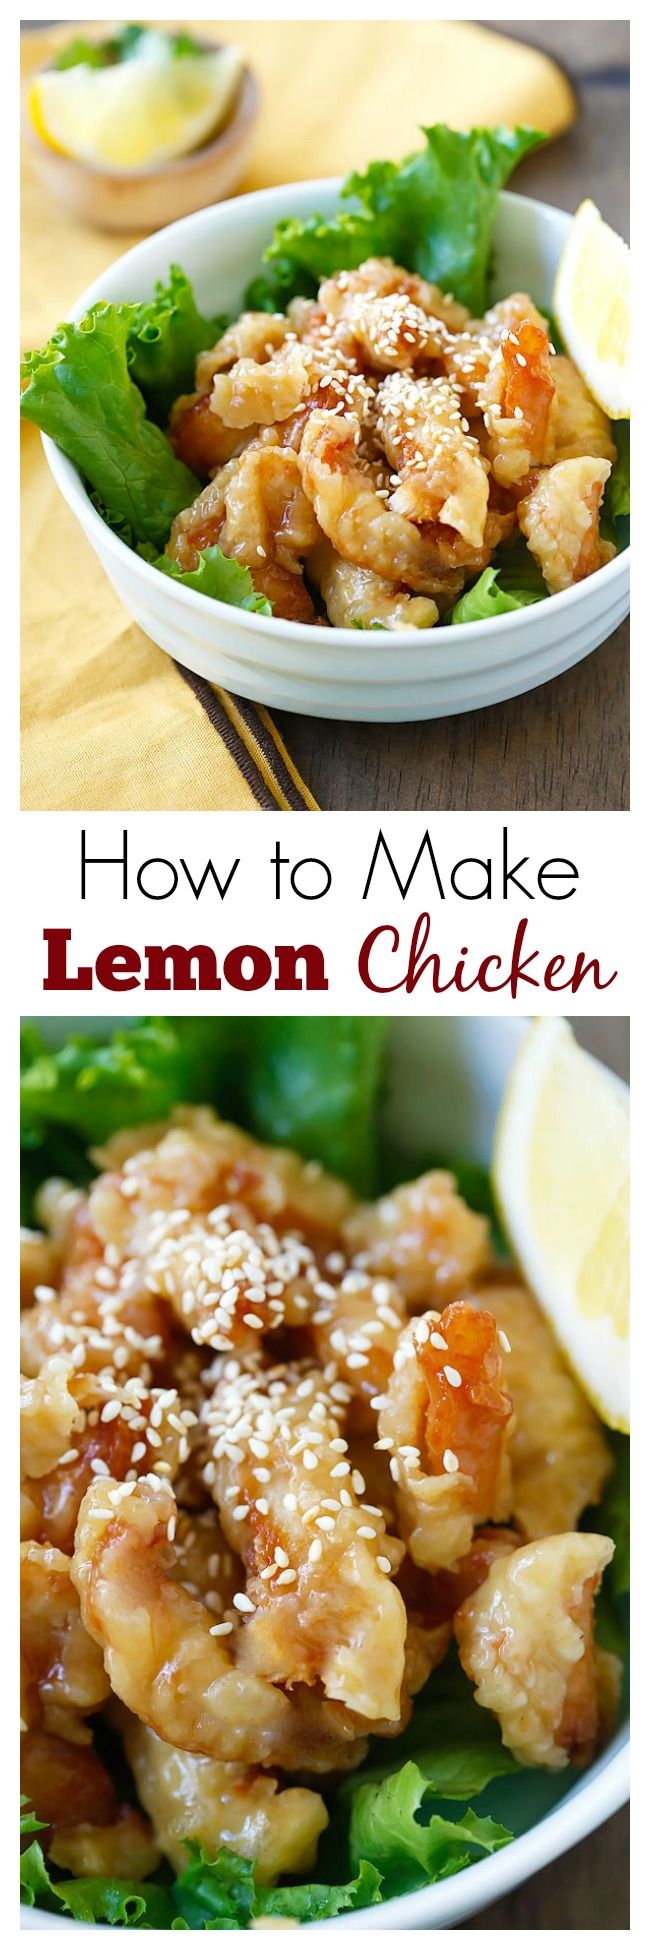 Lemon Chicken - super crispy chicken in yummy and citrusy lemon sauce. This is so good with rice. Learn how to make it   rasamalaysia.com